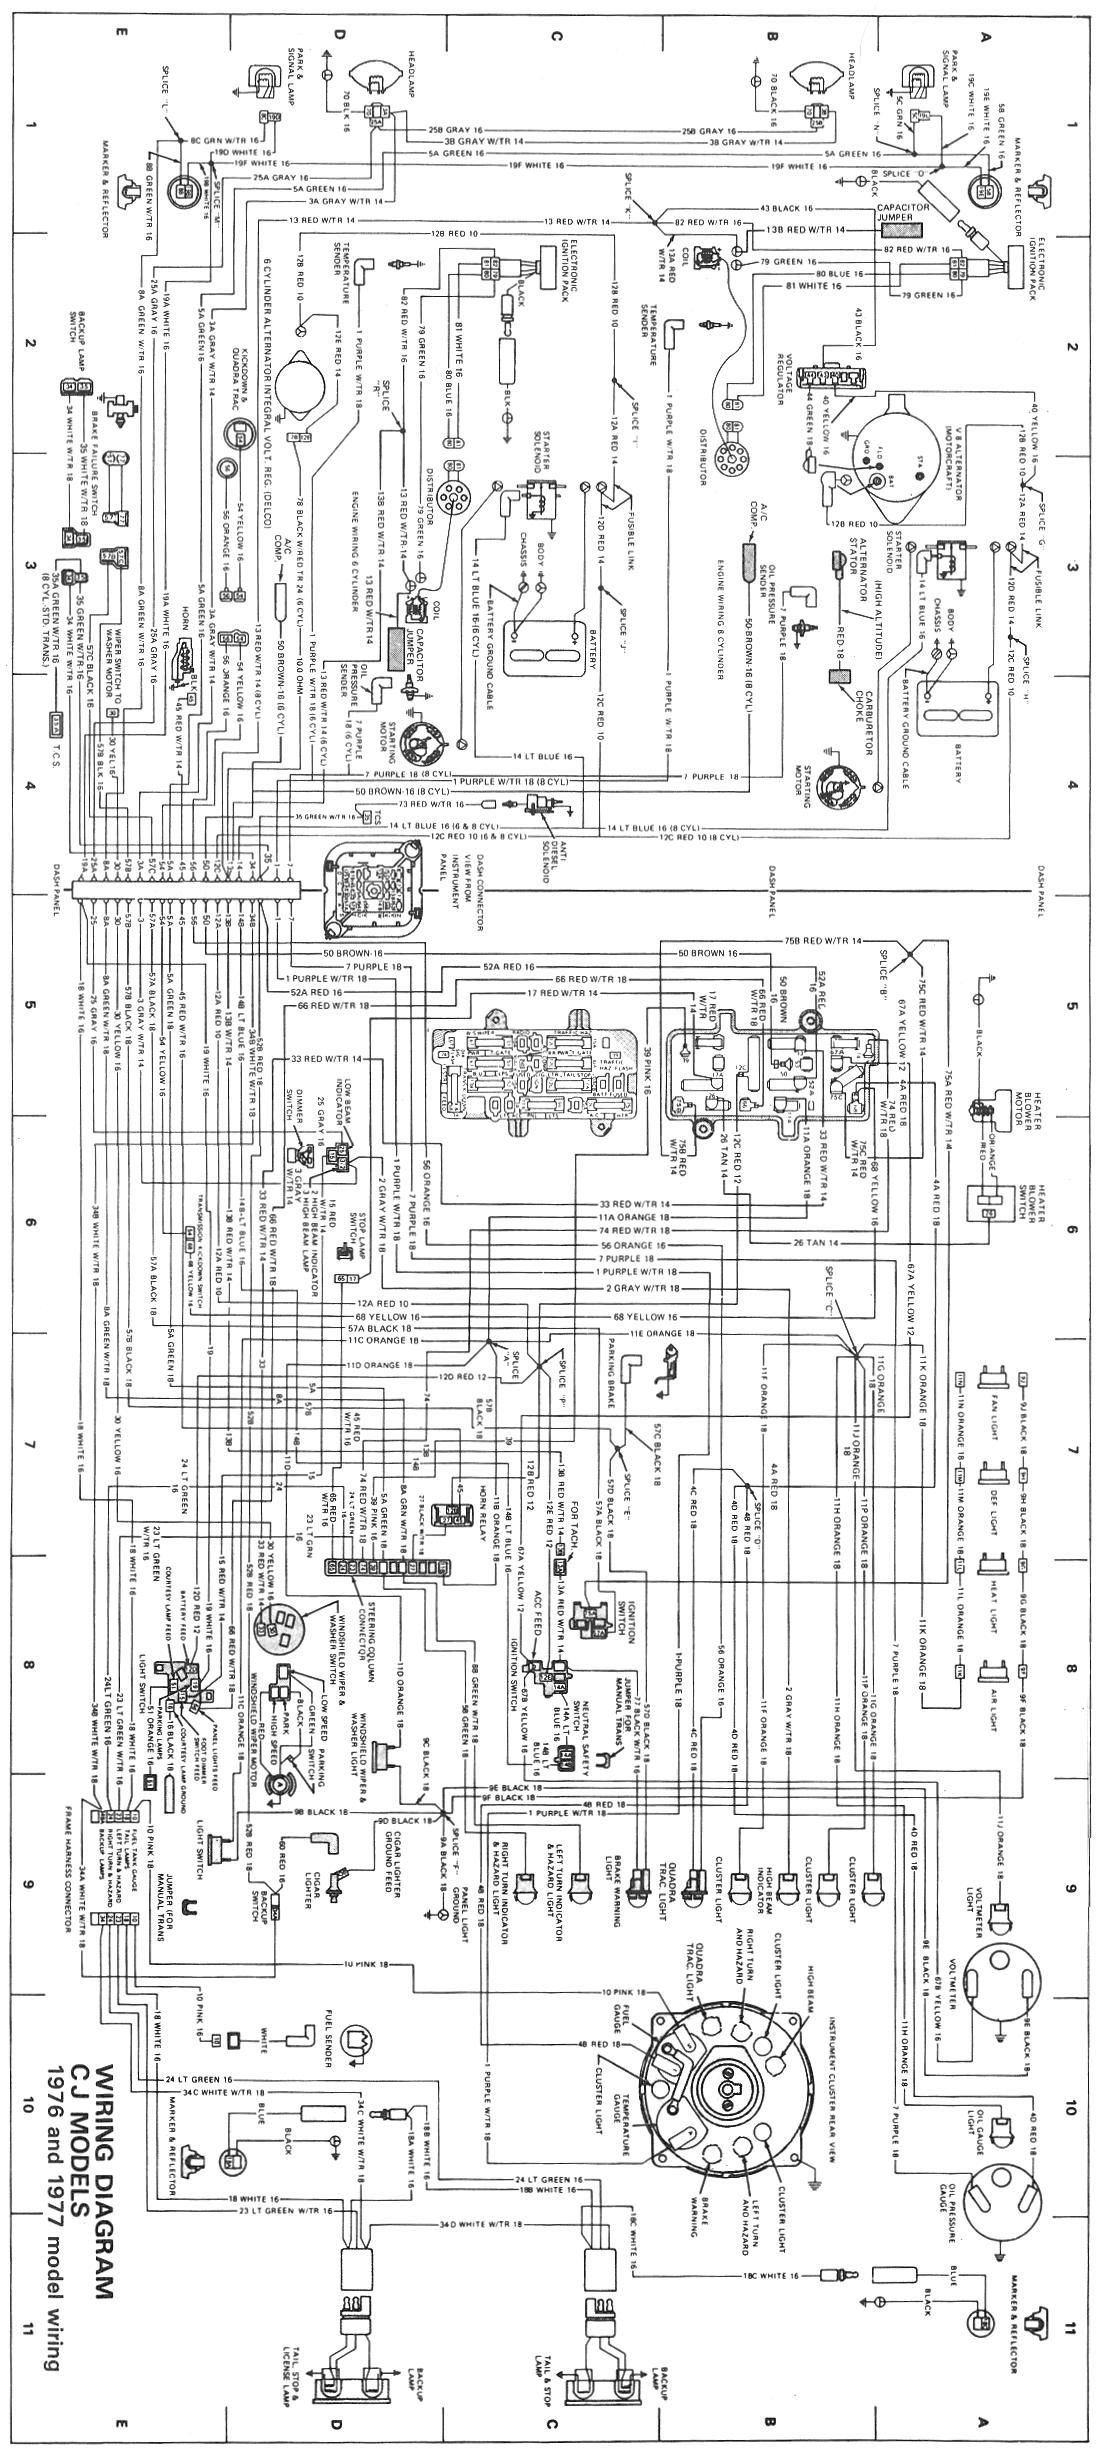 8d25ded6e3673519e155875e09844e5e cj wiring diagram 1976 1977 jpg 1,100�2,459 pixels 1976 jeep cj5 cj7 wiring diagram at gsmx.co